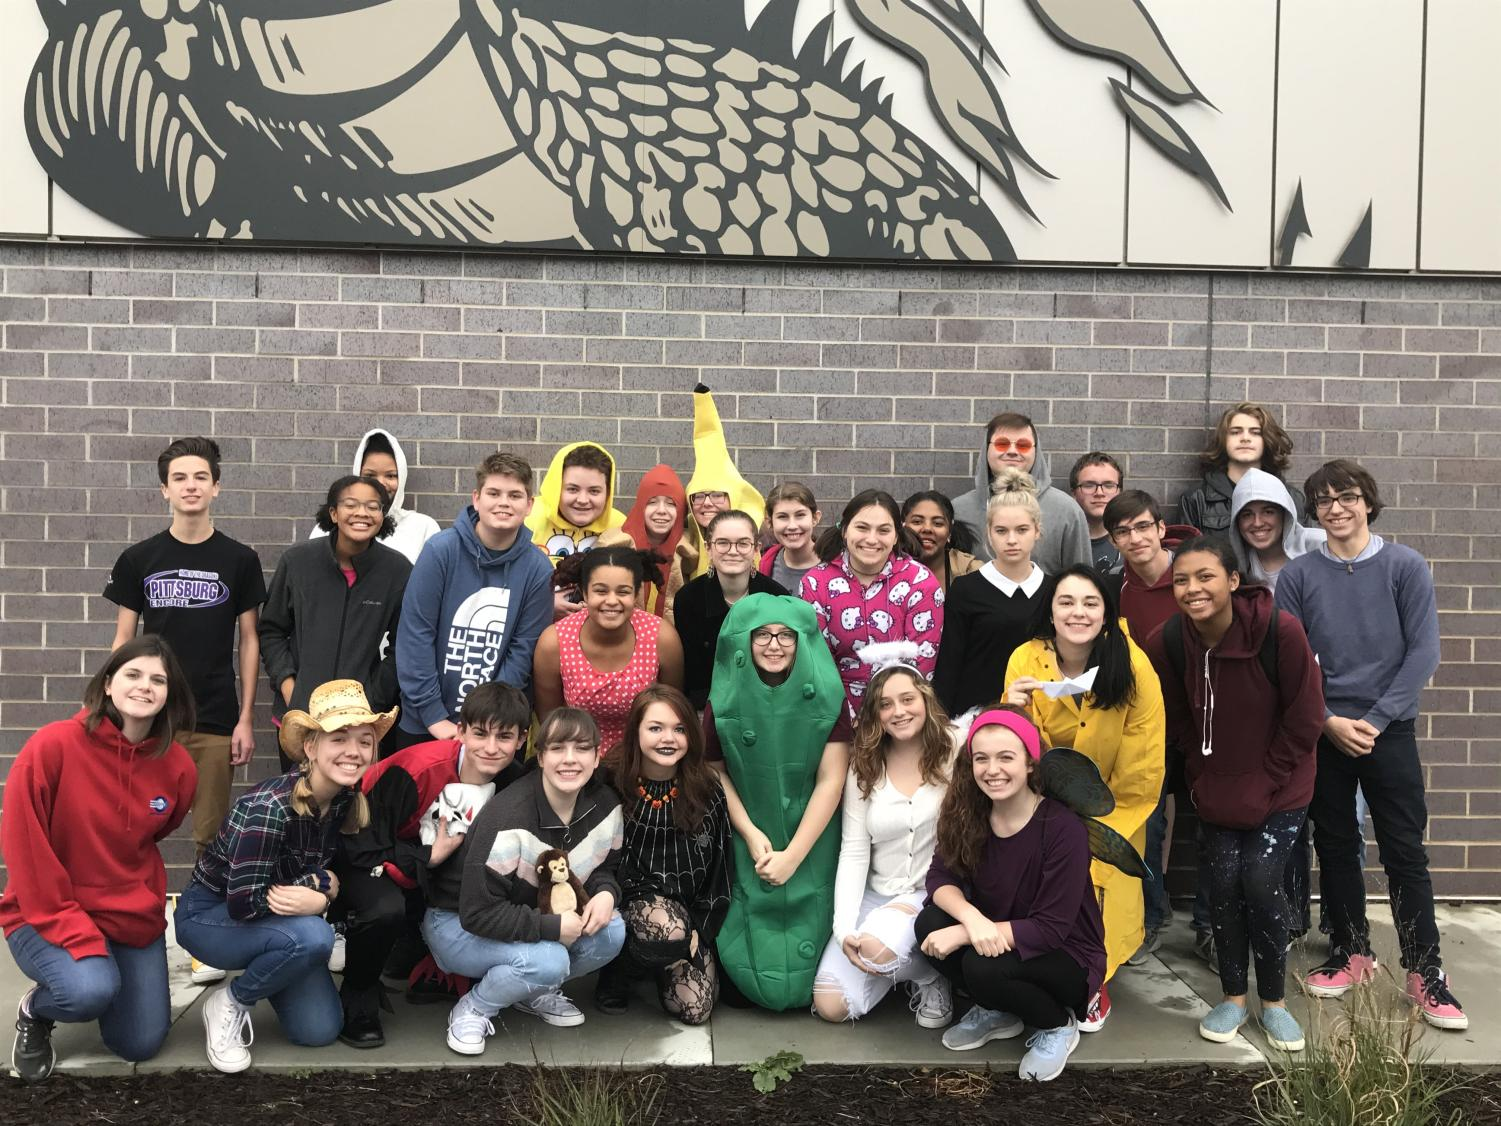 Drama Club participates in a an annual event called Trick or Treat So Kids Can Eat to . collect community food donations for Wesley House.